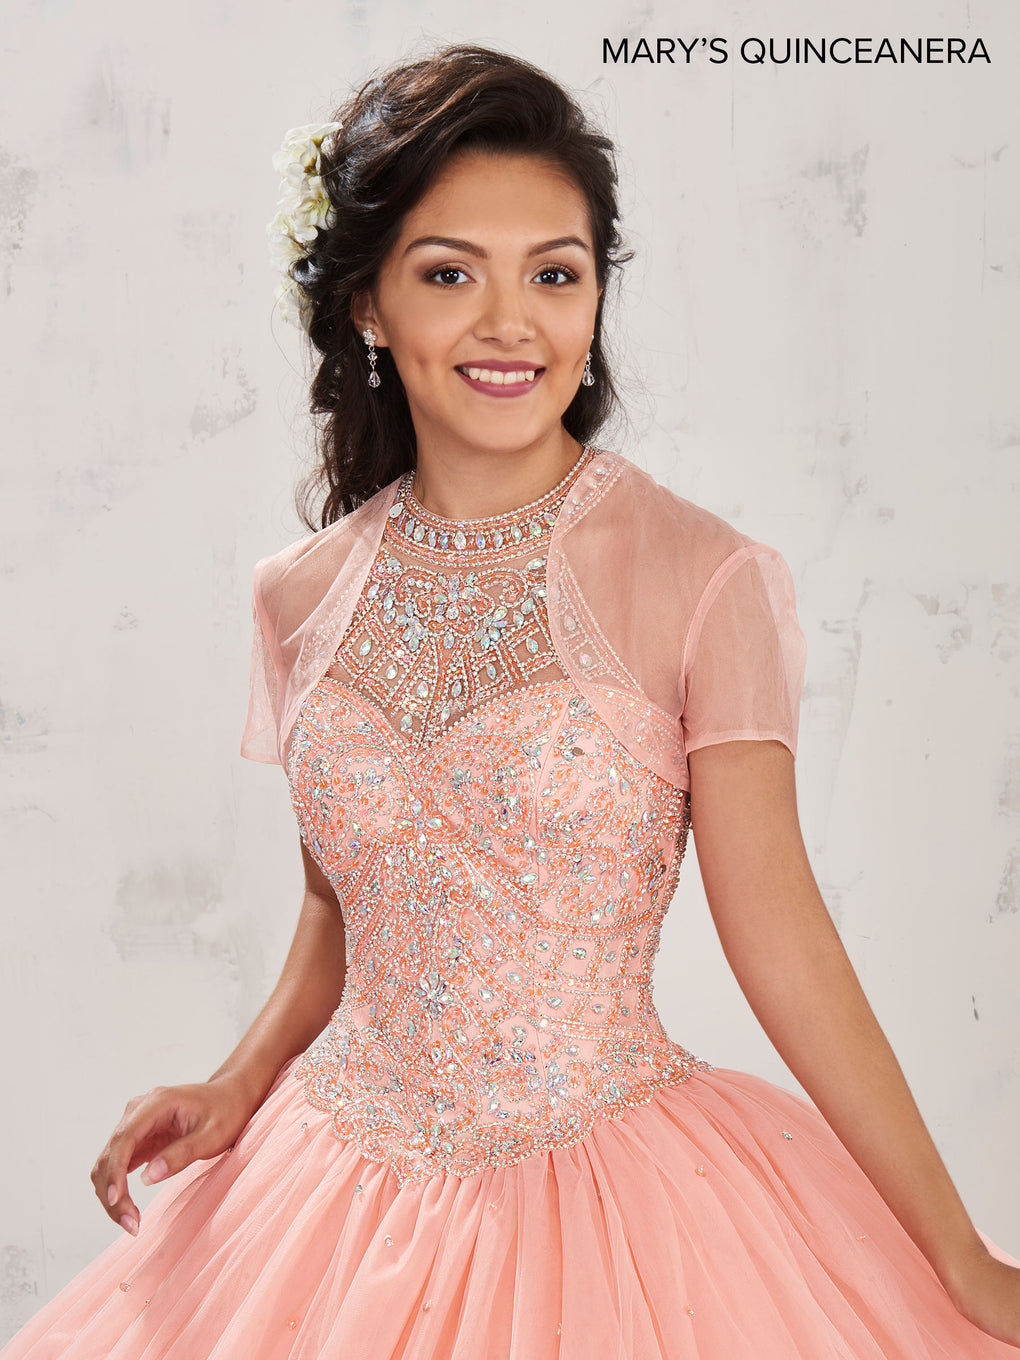 Marys Quinceanera Dresses in Peach, Royal, or White Color